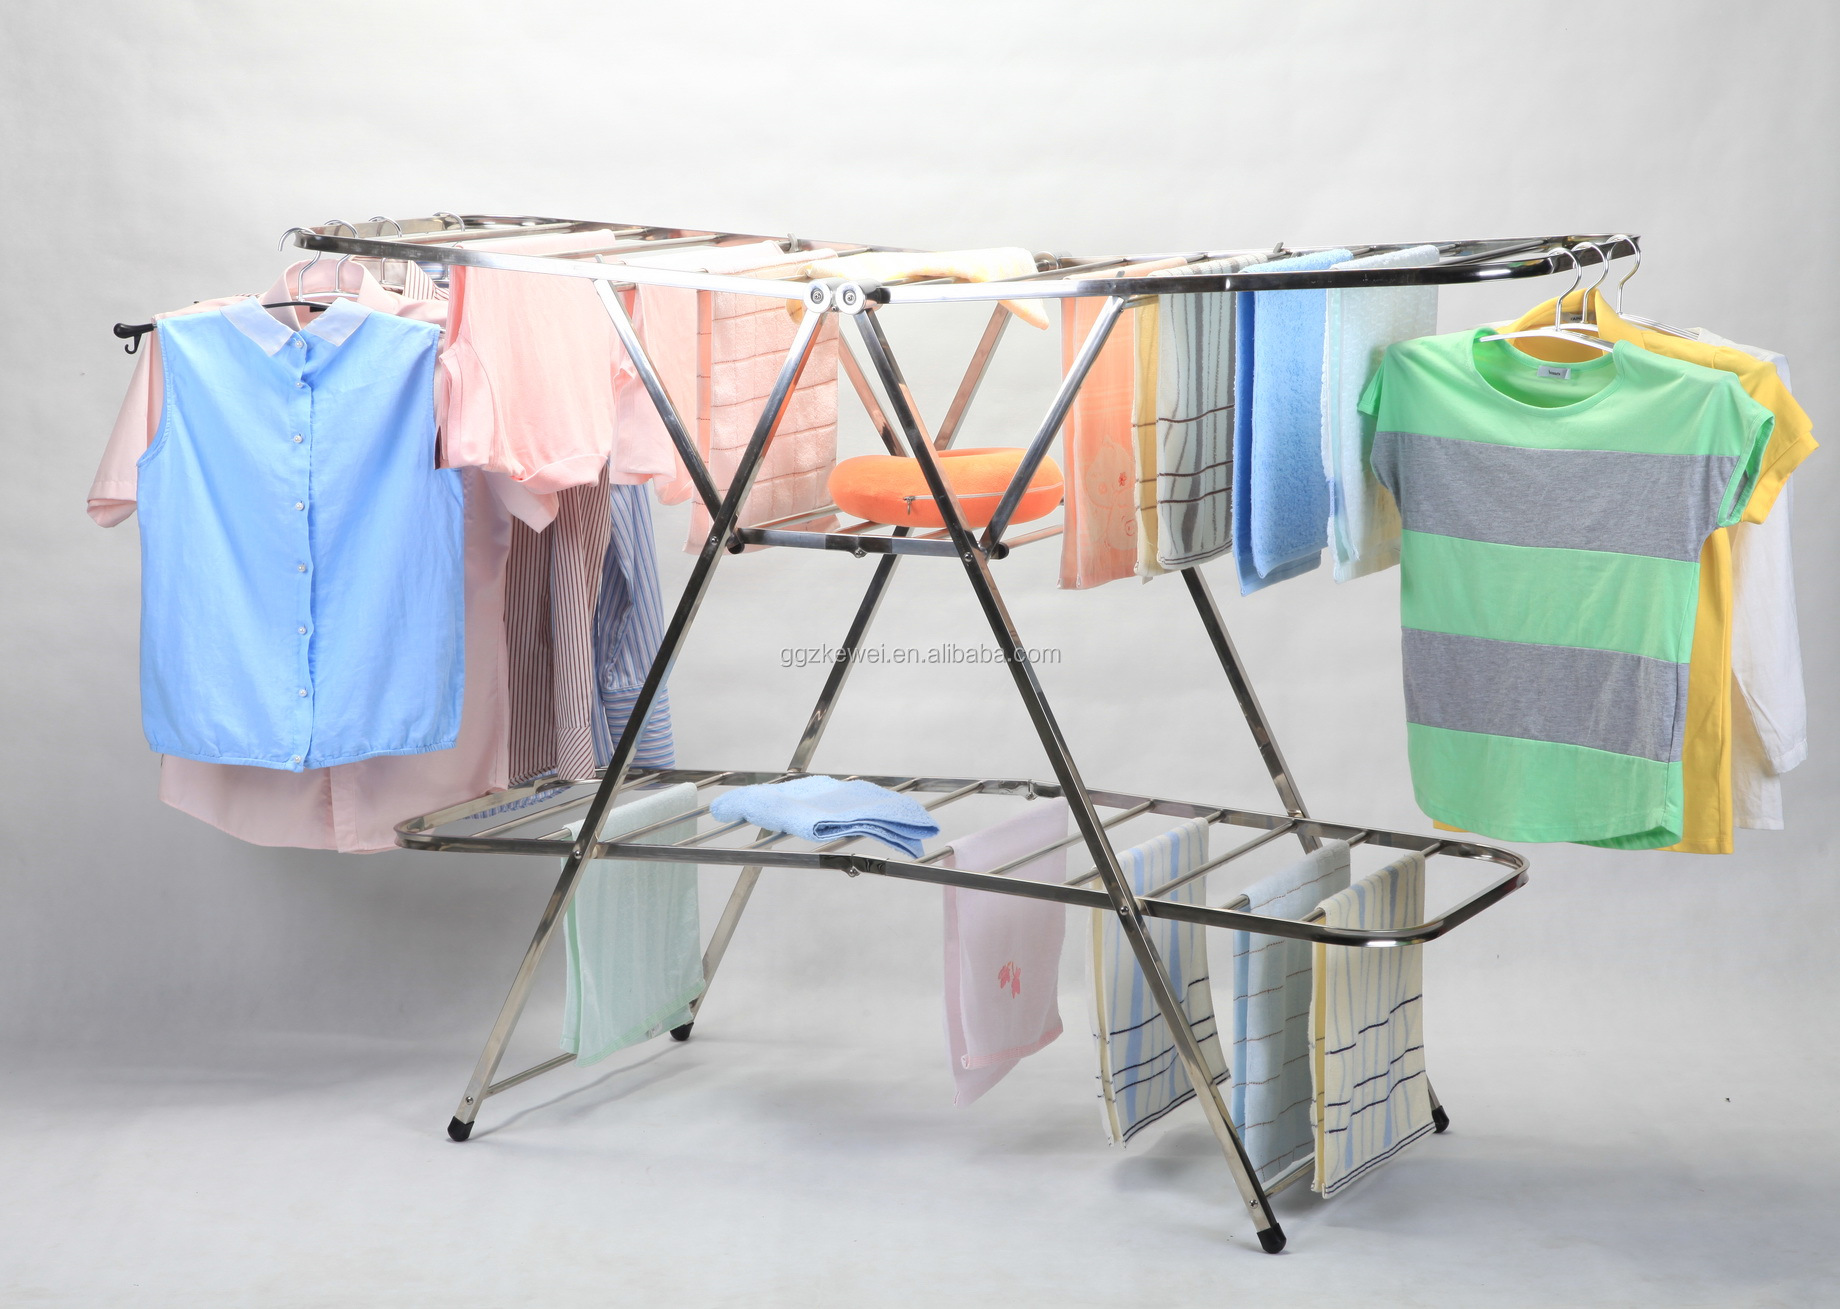 3 Layers Stainless Steel   Folding Clothes Drying Racks, Multifuctional Cloth Dryer Rack Hanger Rack HL-7019C